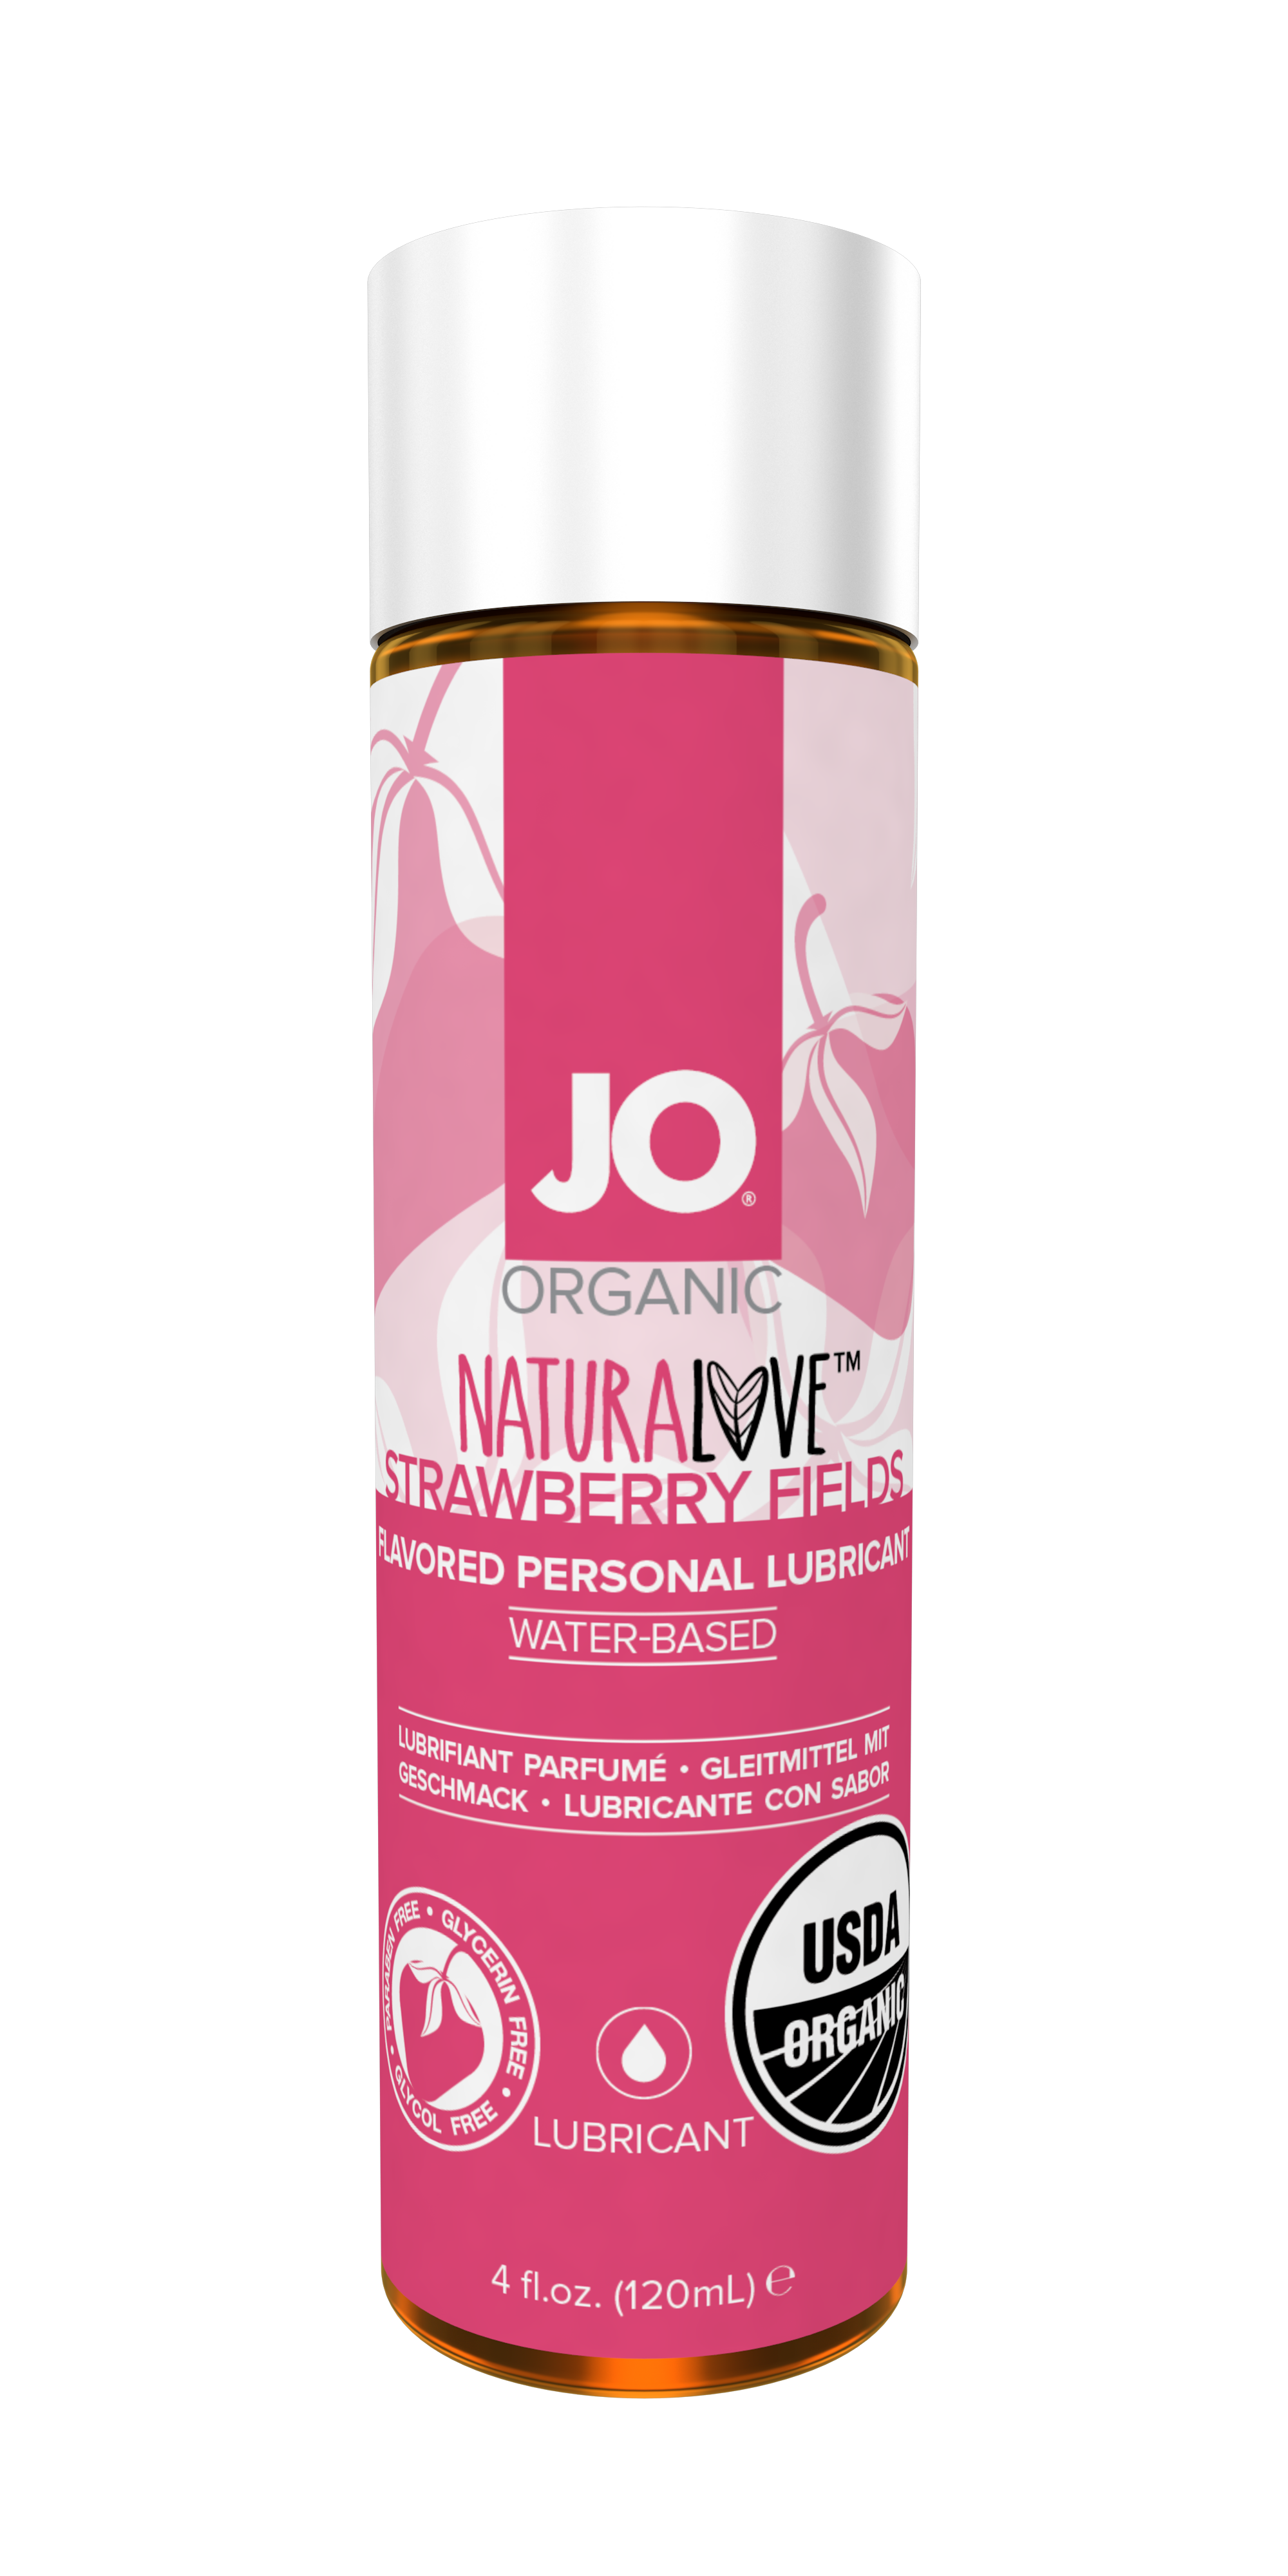 44002 JO USDA ORGANIC - STRAWBERRY - LUBRICANT (WATER-BASED) 4 floz 120 mL.png